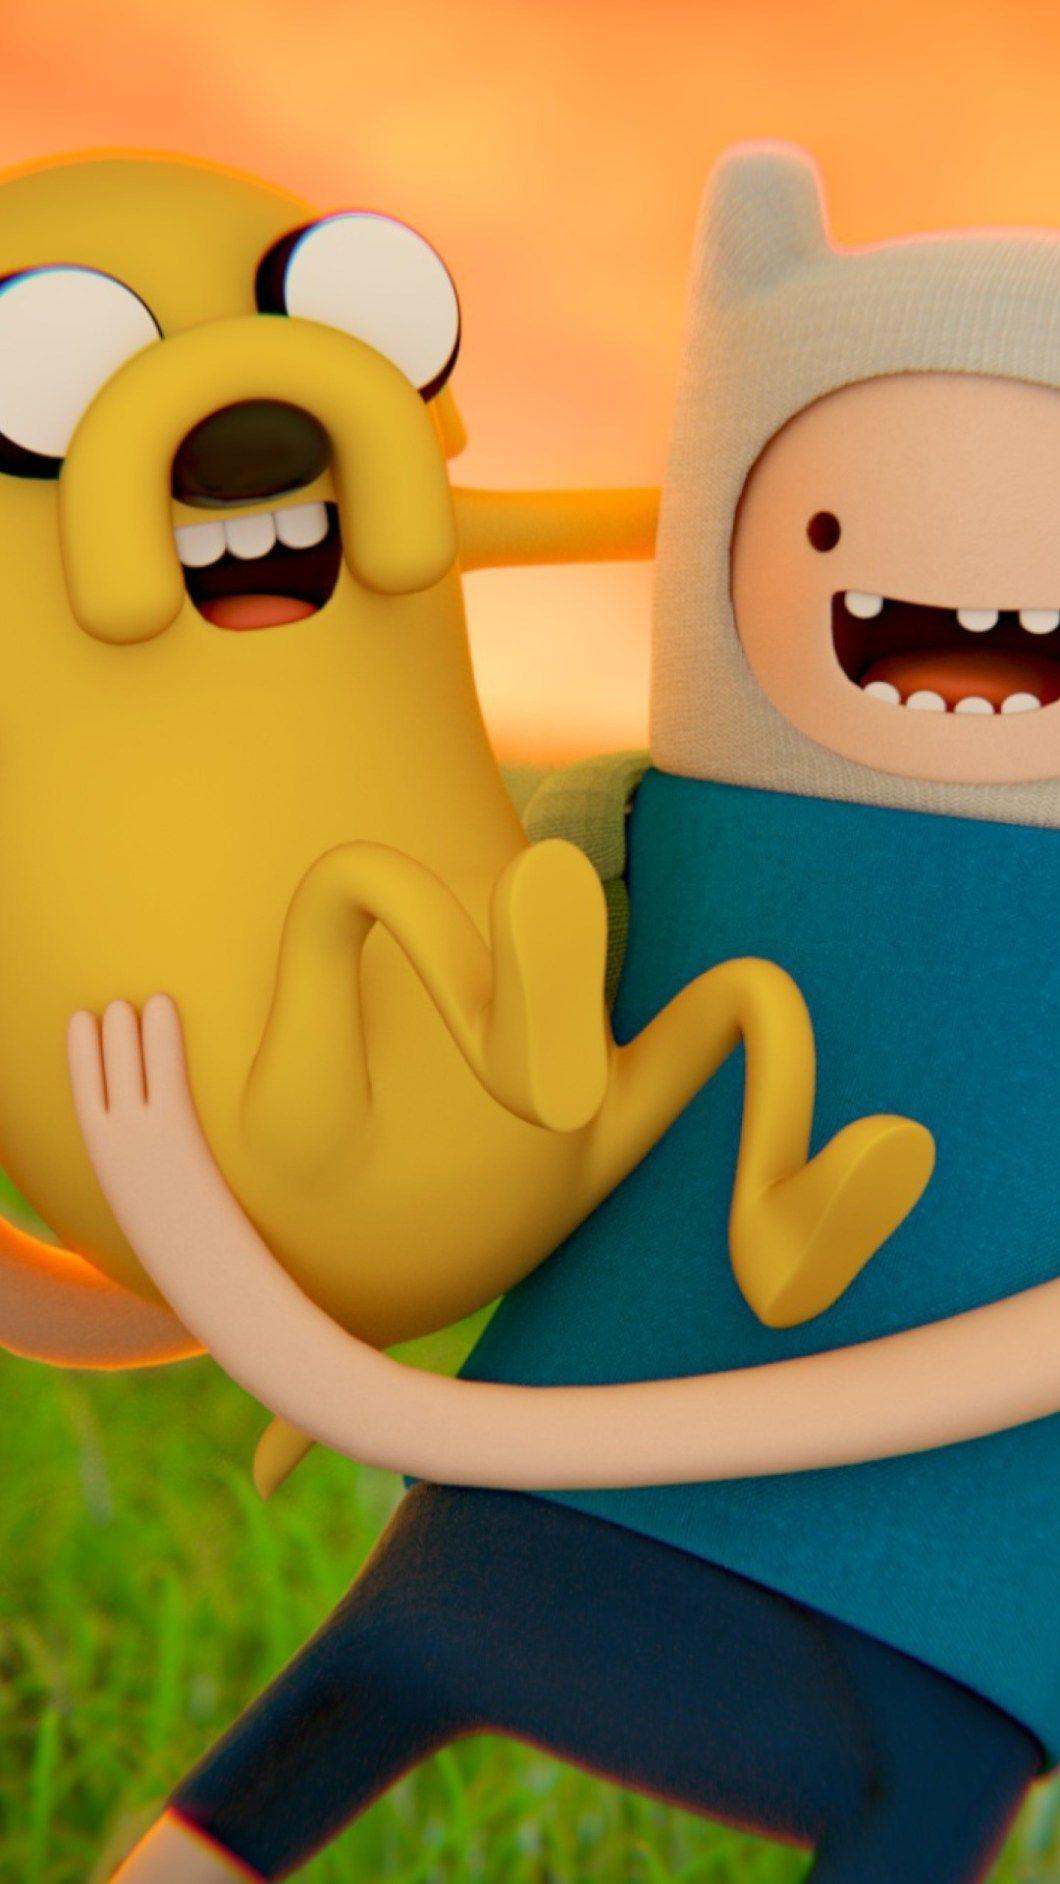 Adventure Time Wallpapers Hd Iphone